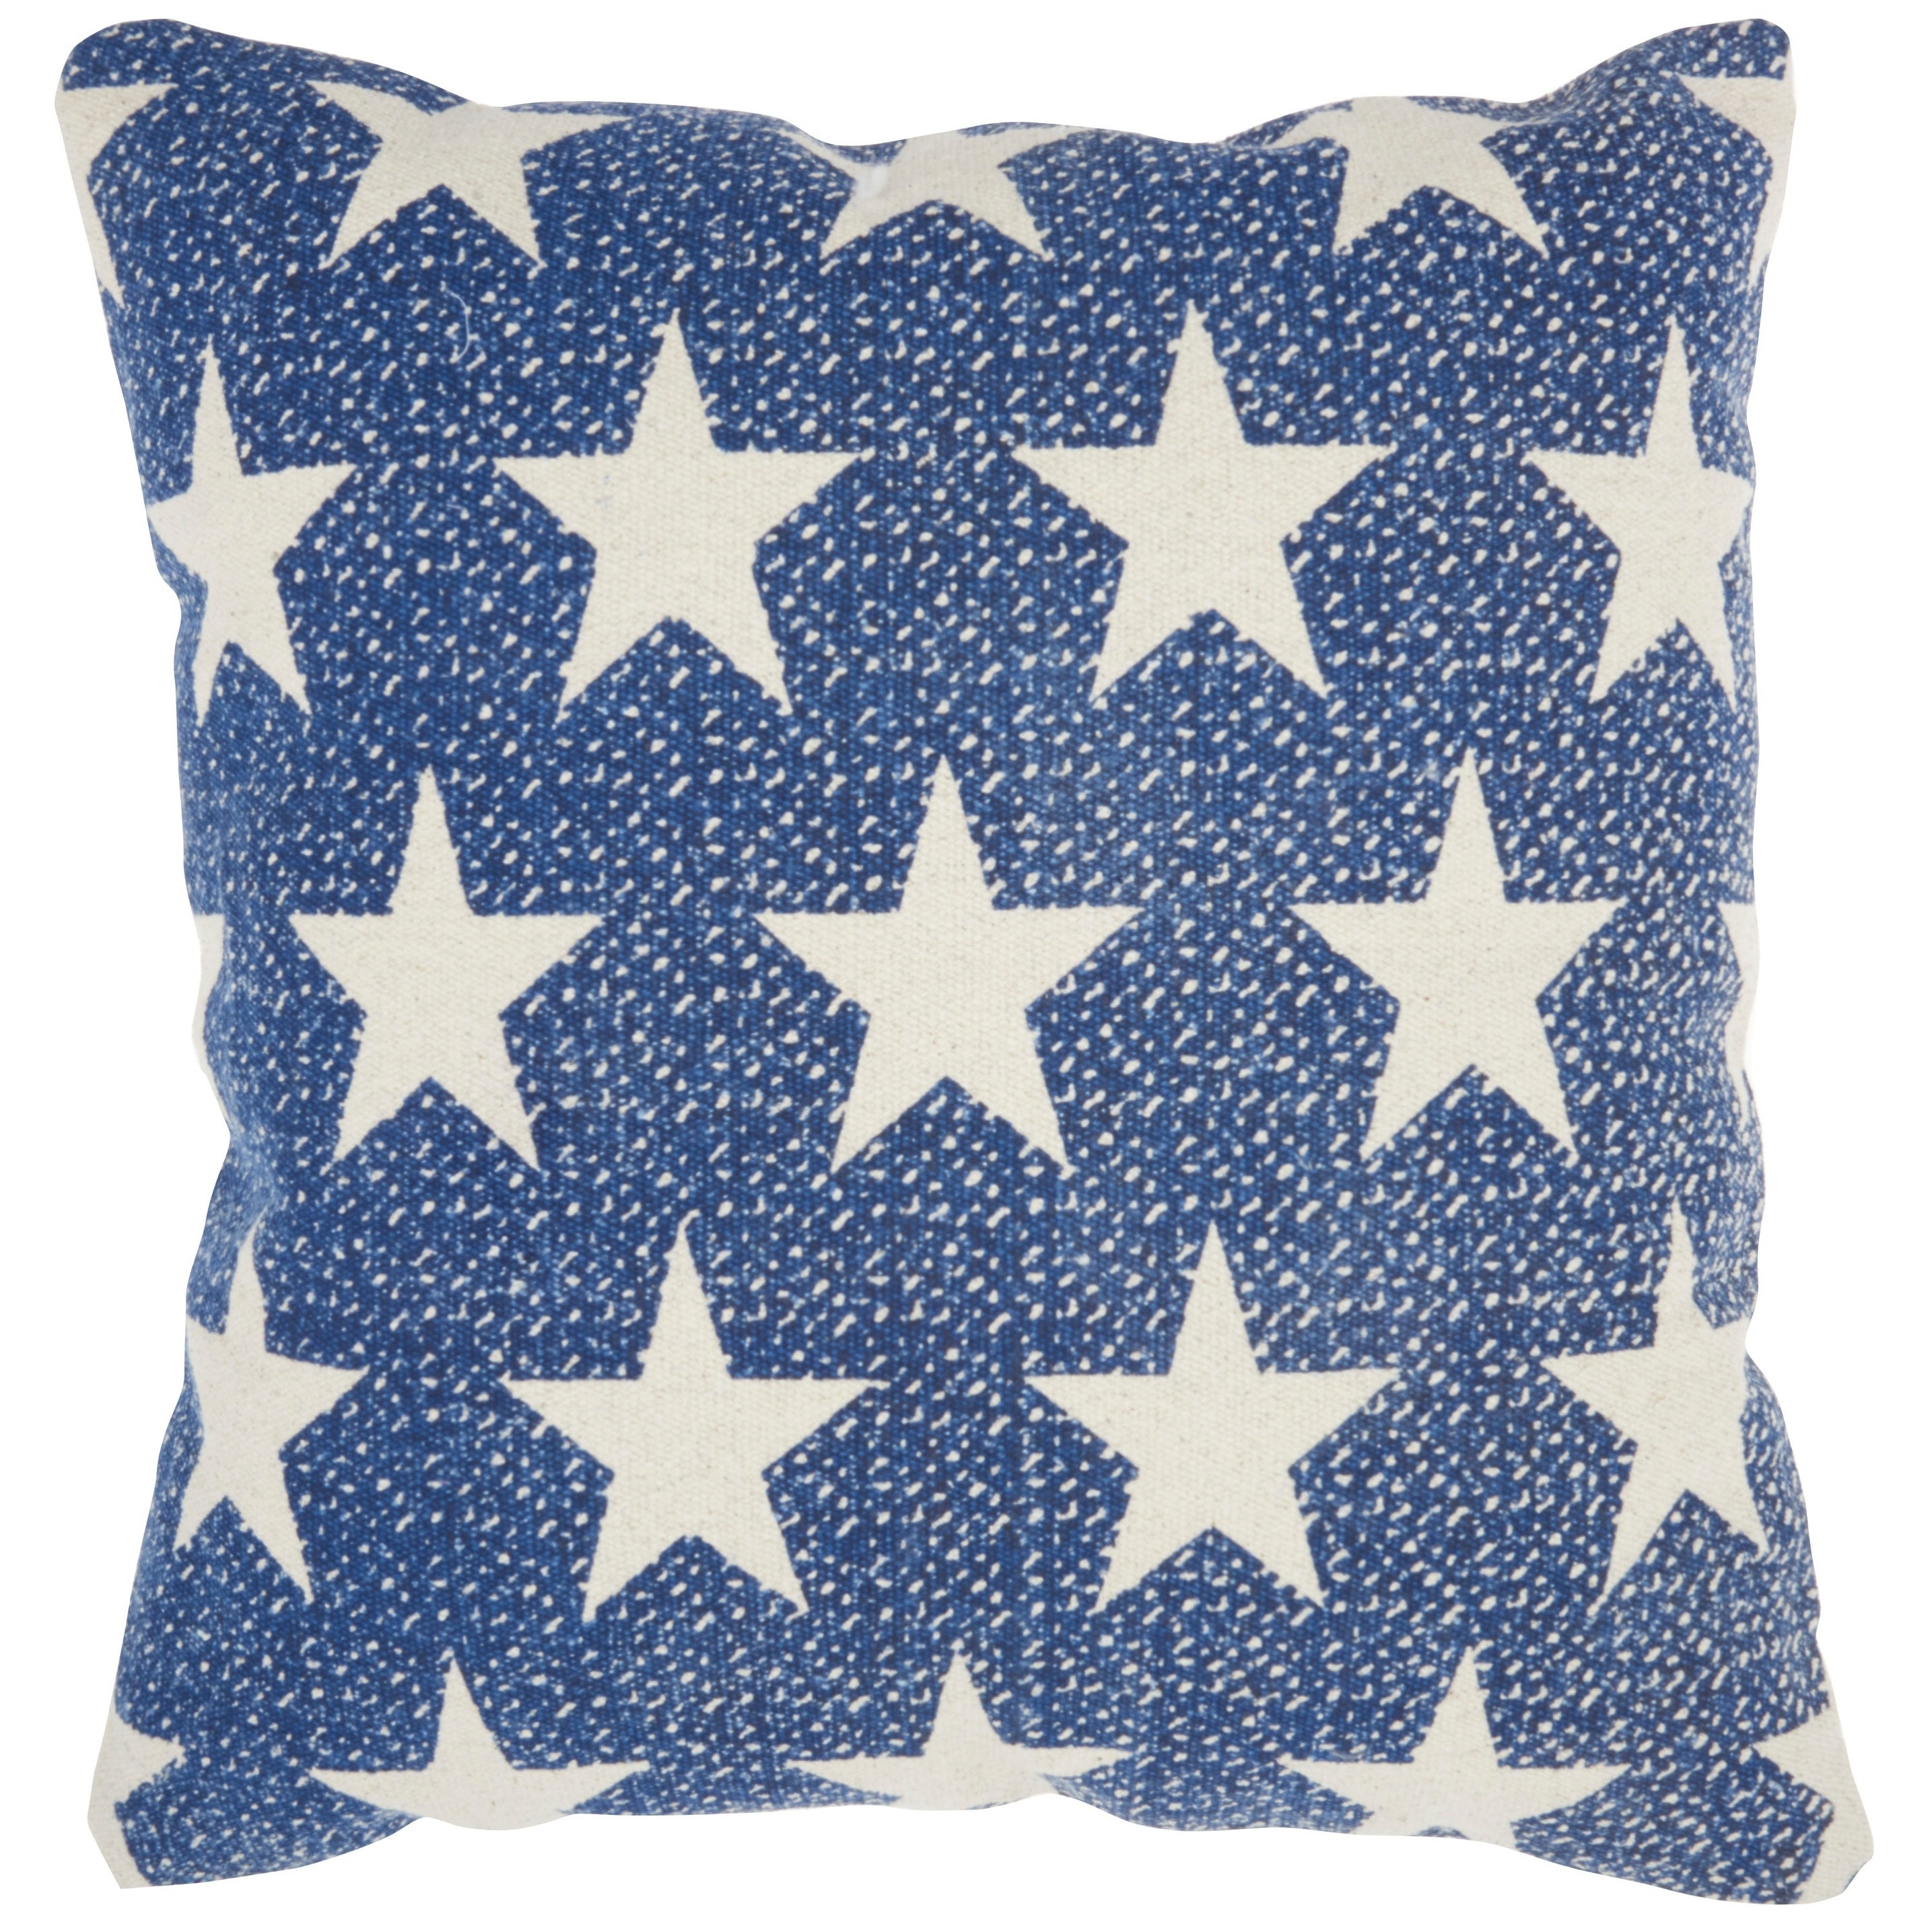 Mina Victory Printed Stars Throw Pillow 20 X 20 Overstock 28287712